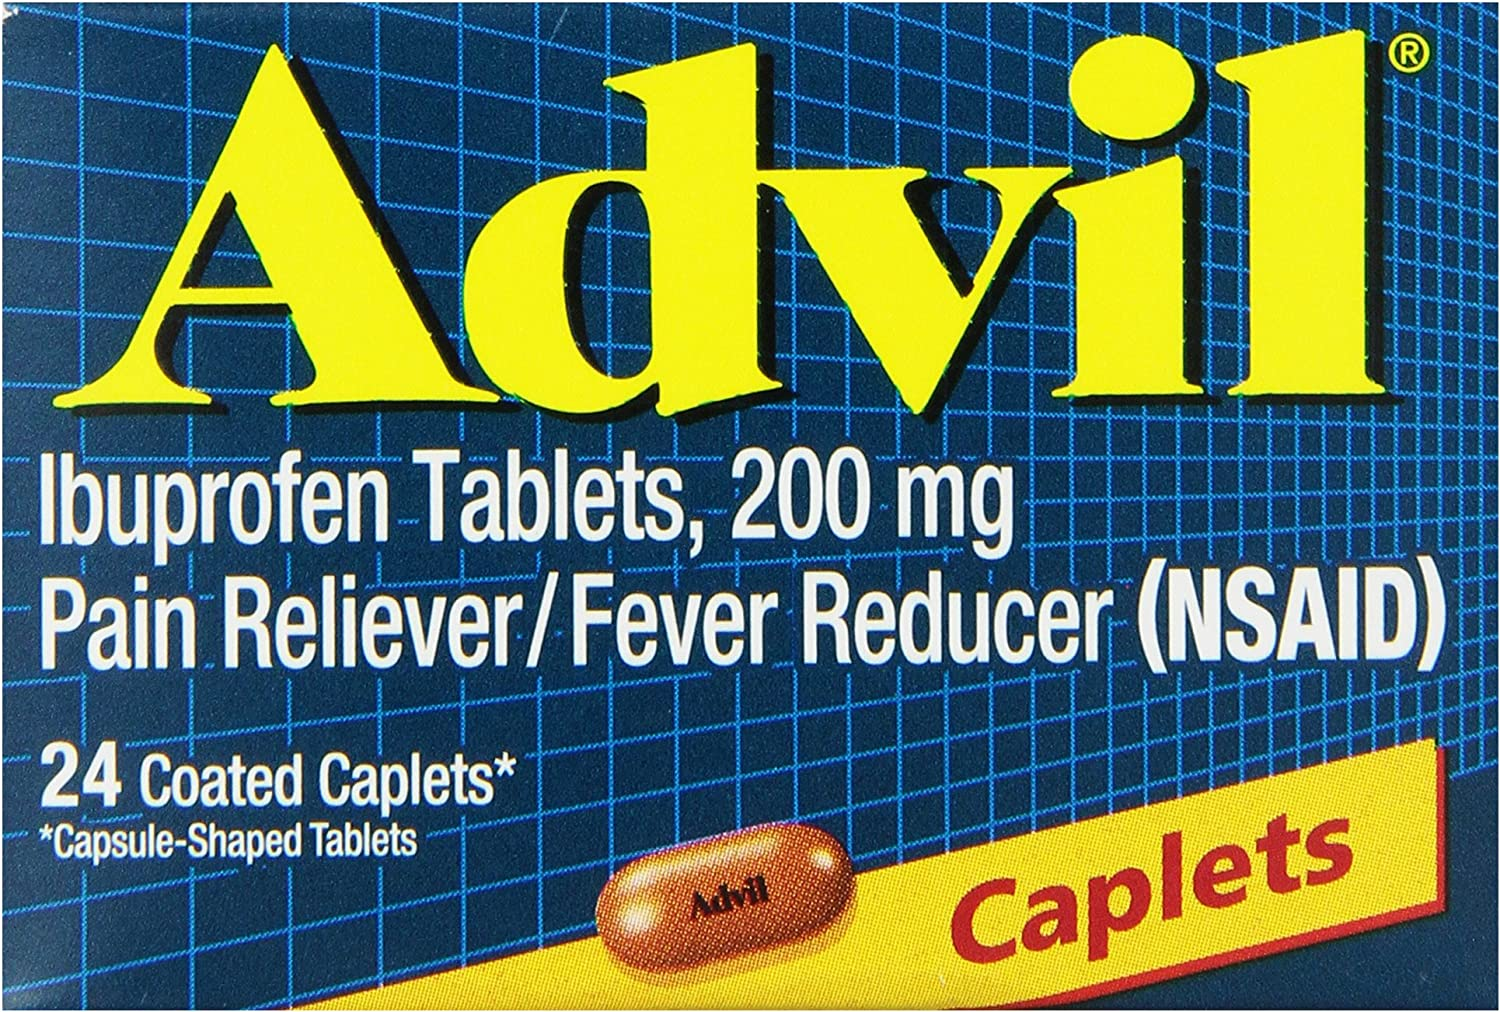 Advil Coated Caplets Pain Reliever and Fever Reducer, Ibuprofen 200mg, 24 Count, Fast-Acting Formula for Headache Relief, Toothache Pain Relief and Arthritis Pain Relief